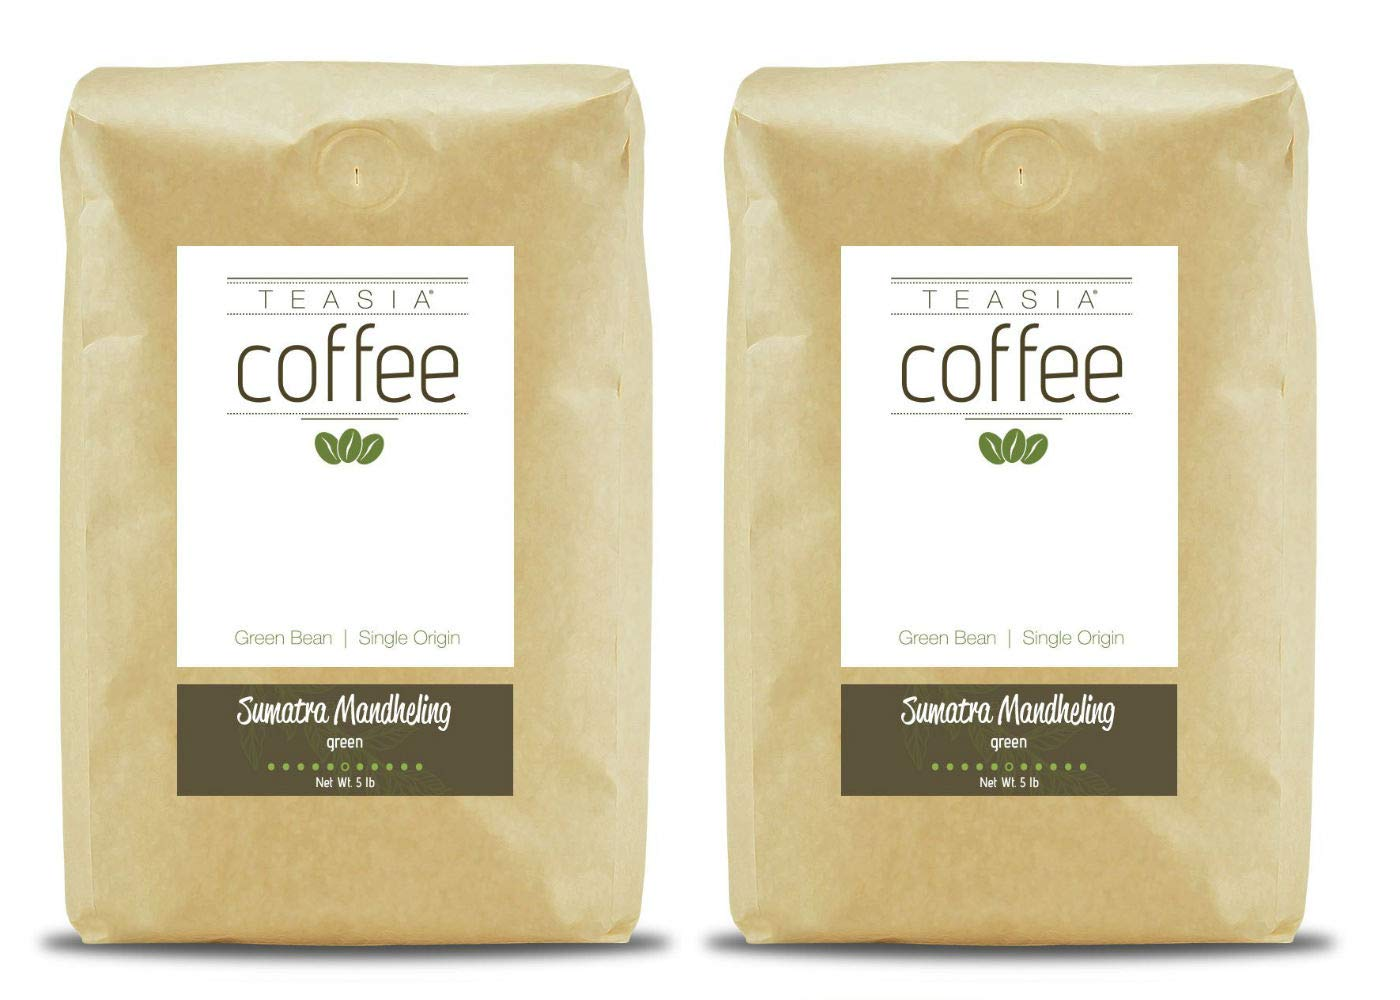 Teasia Coffee, Sumatra Mandheling, 2-Pack, Single Origin, Green Unroasted Whole Coffee Beans, 5-Pound Bag